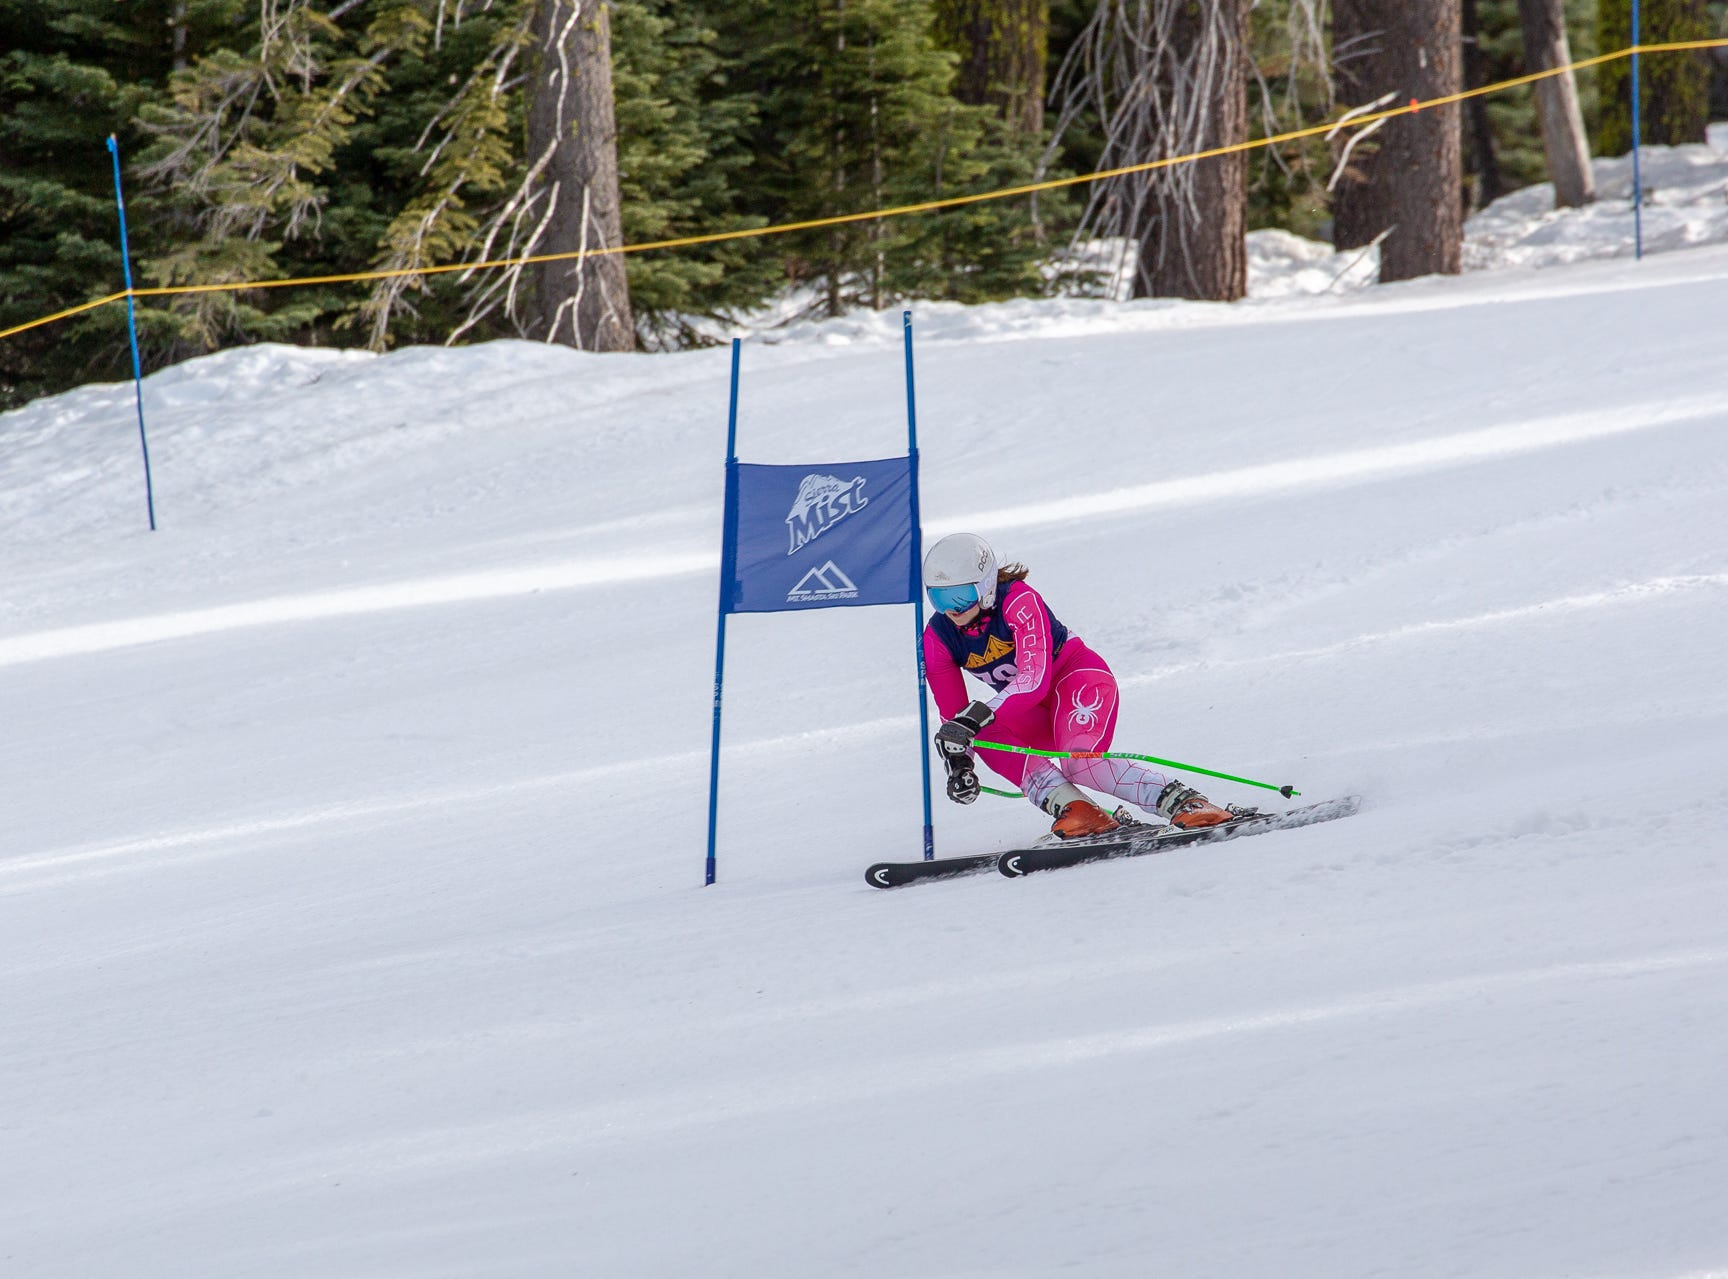 Carter Chase of Mt. Shasta races in the third high school ski meet of 2019 on Monday, Jan. 28 at Mt. Shasta Ski Park.